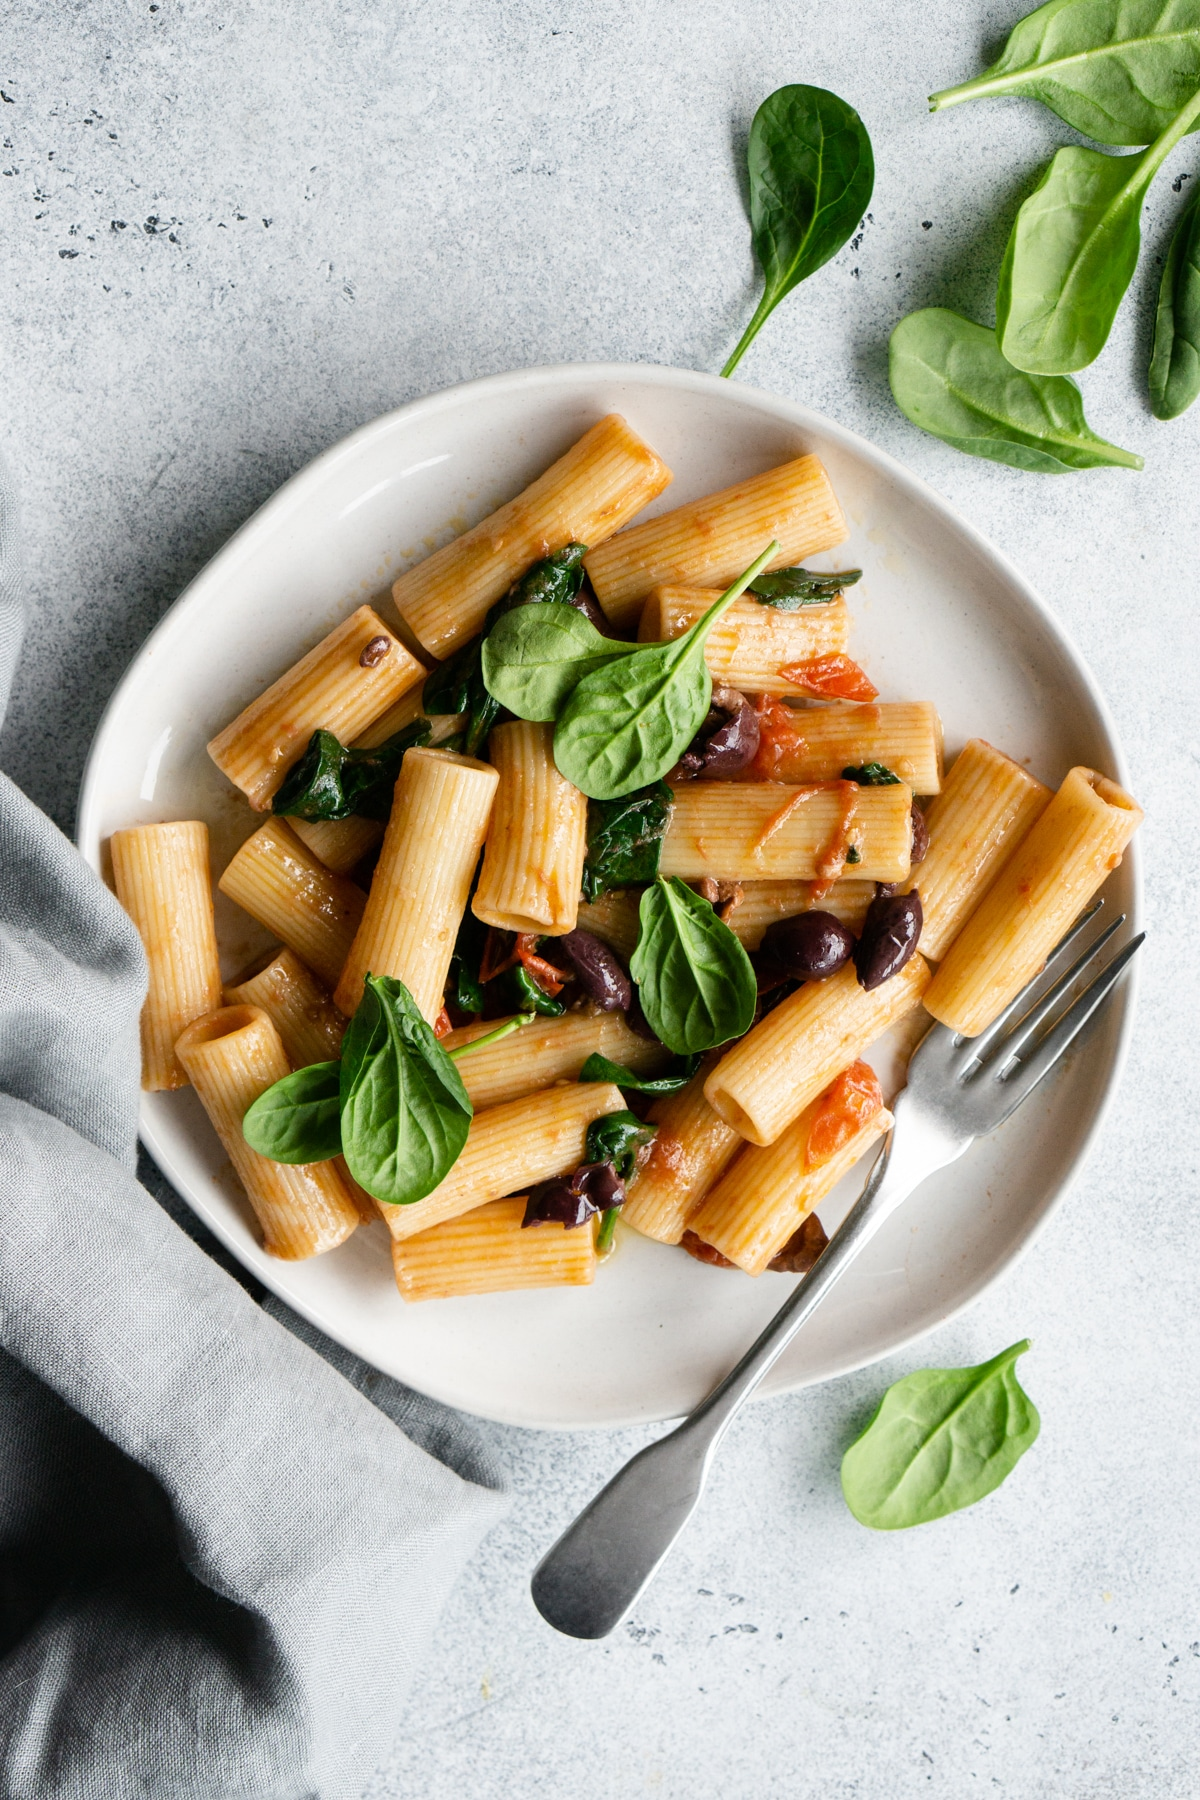 Spinach penne pasta in a plate with a fork